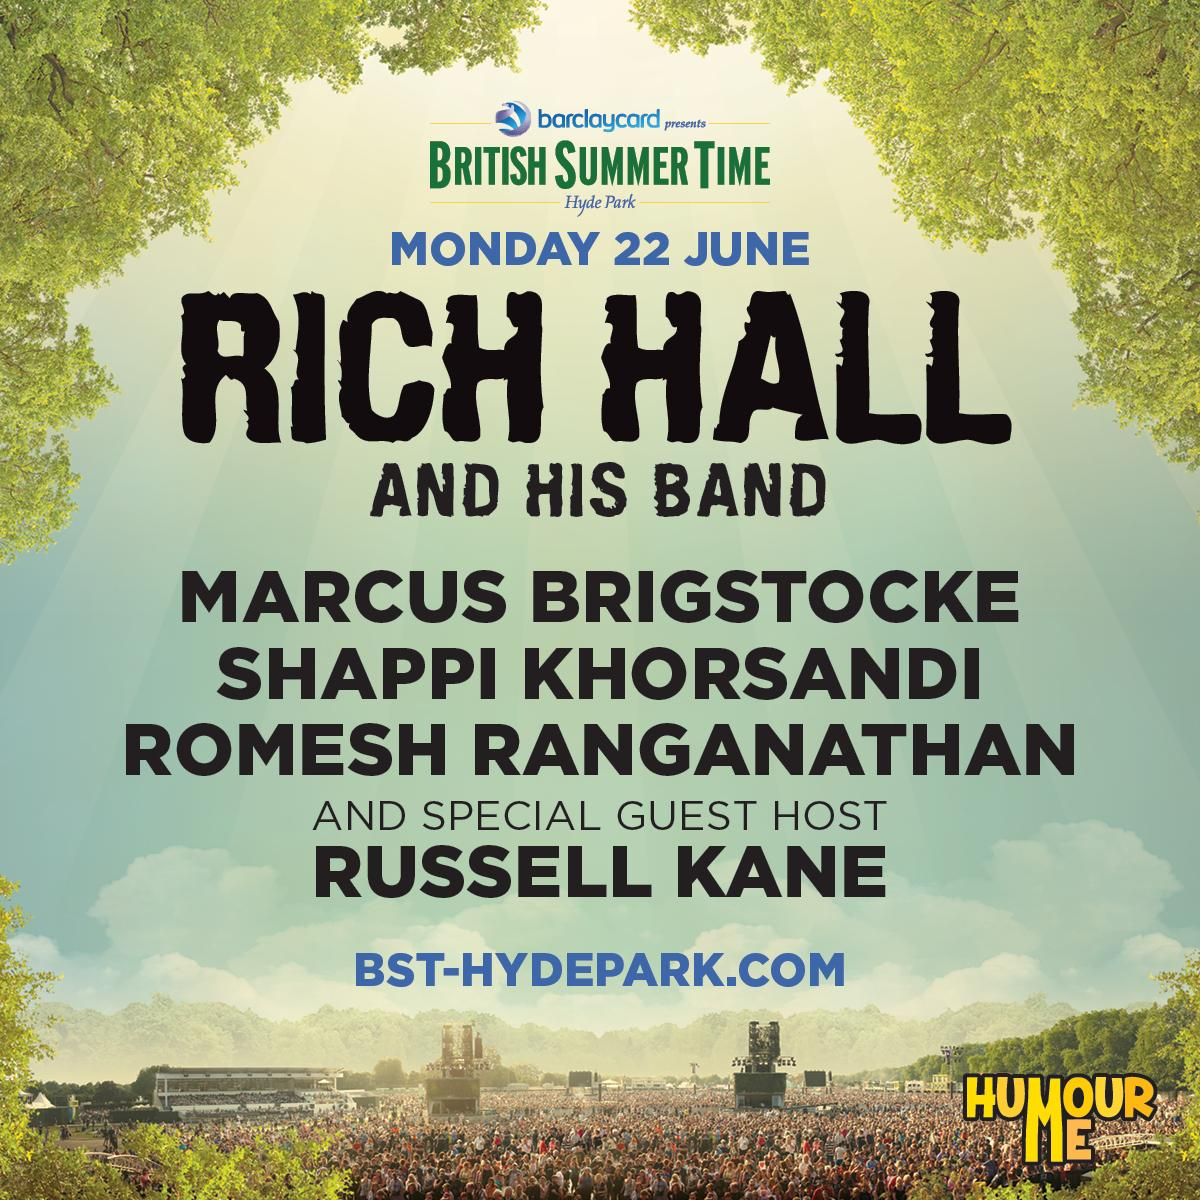 Pre-Sale tickets for Hyde Park BST festival http://t.co/QrPR4GXgYj http://t.co/EovLrbXf6d